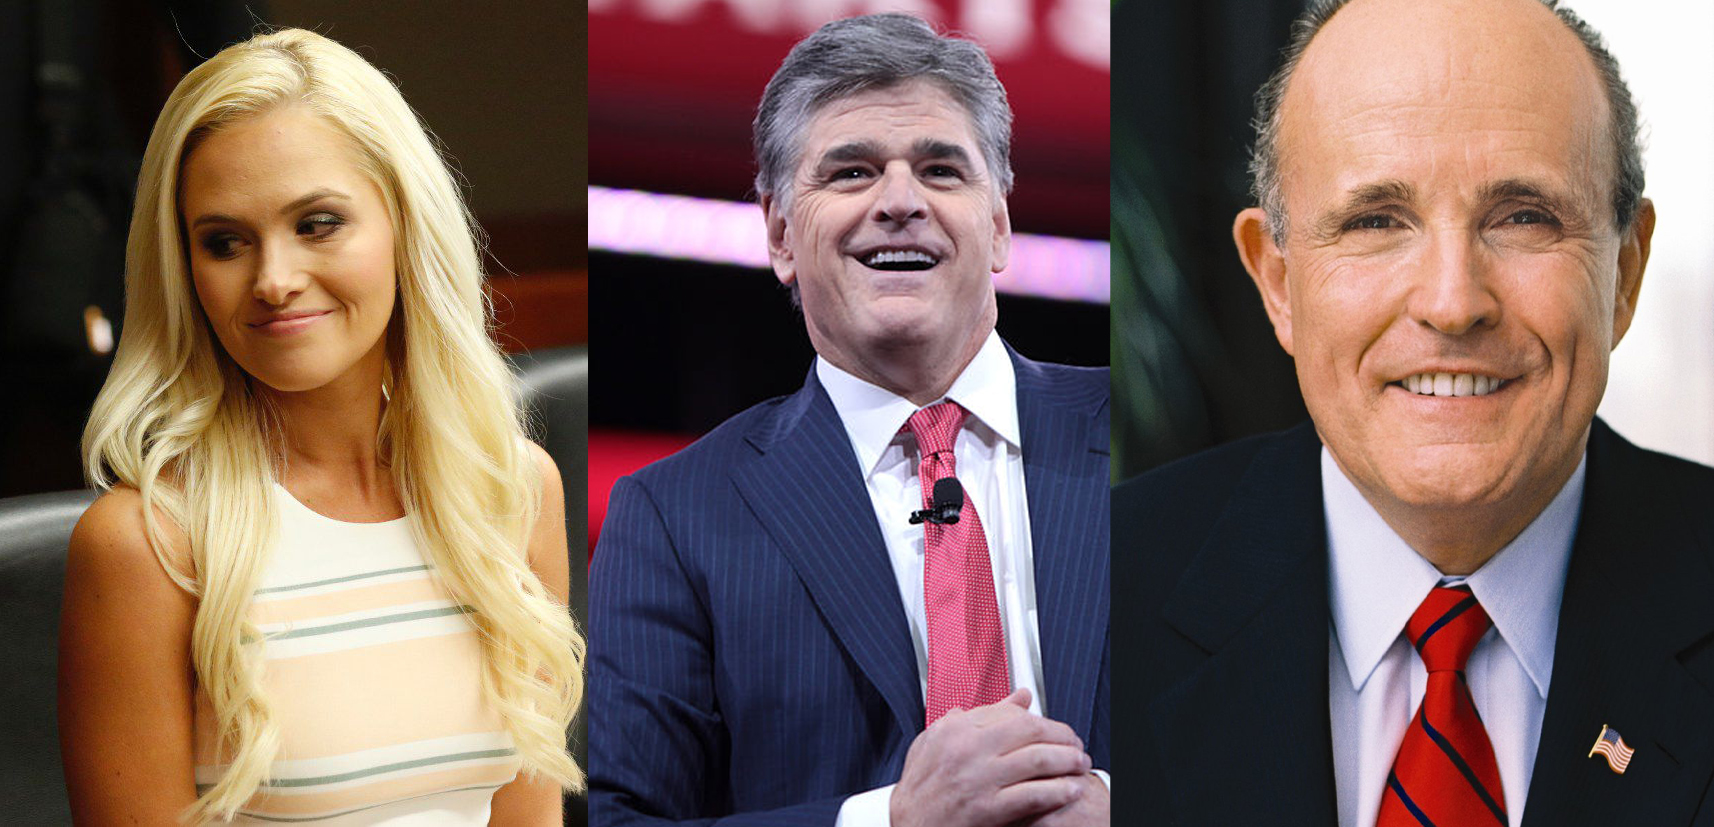 White House Adds Drs. Giuliani, Hannity, and Lahren to Coronavirus Task Force